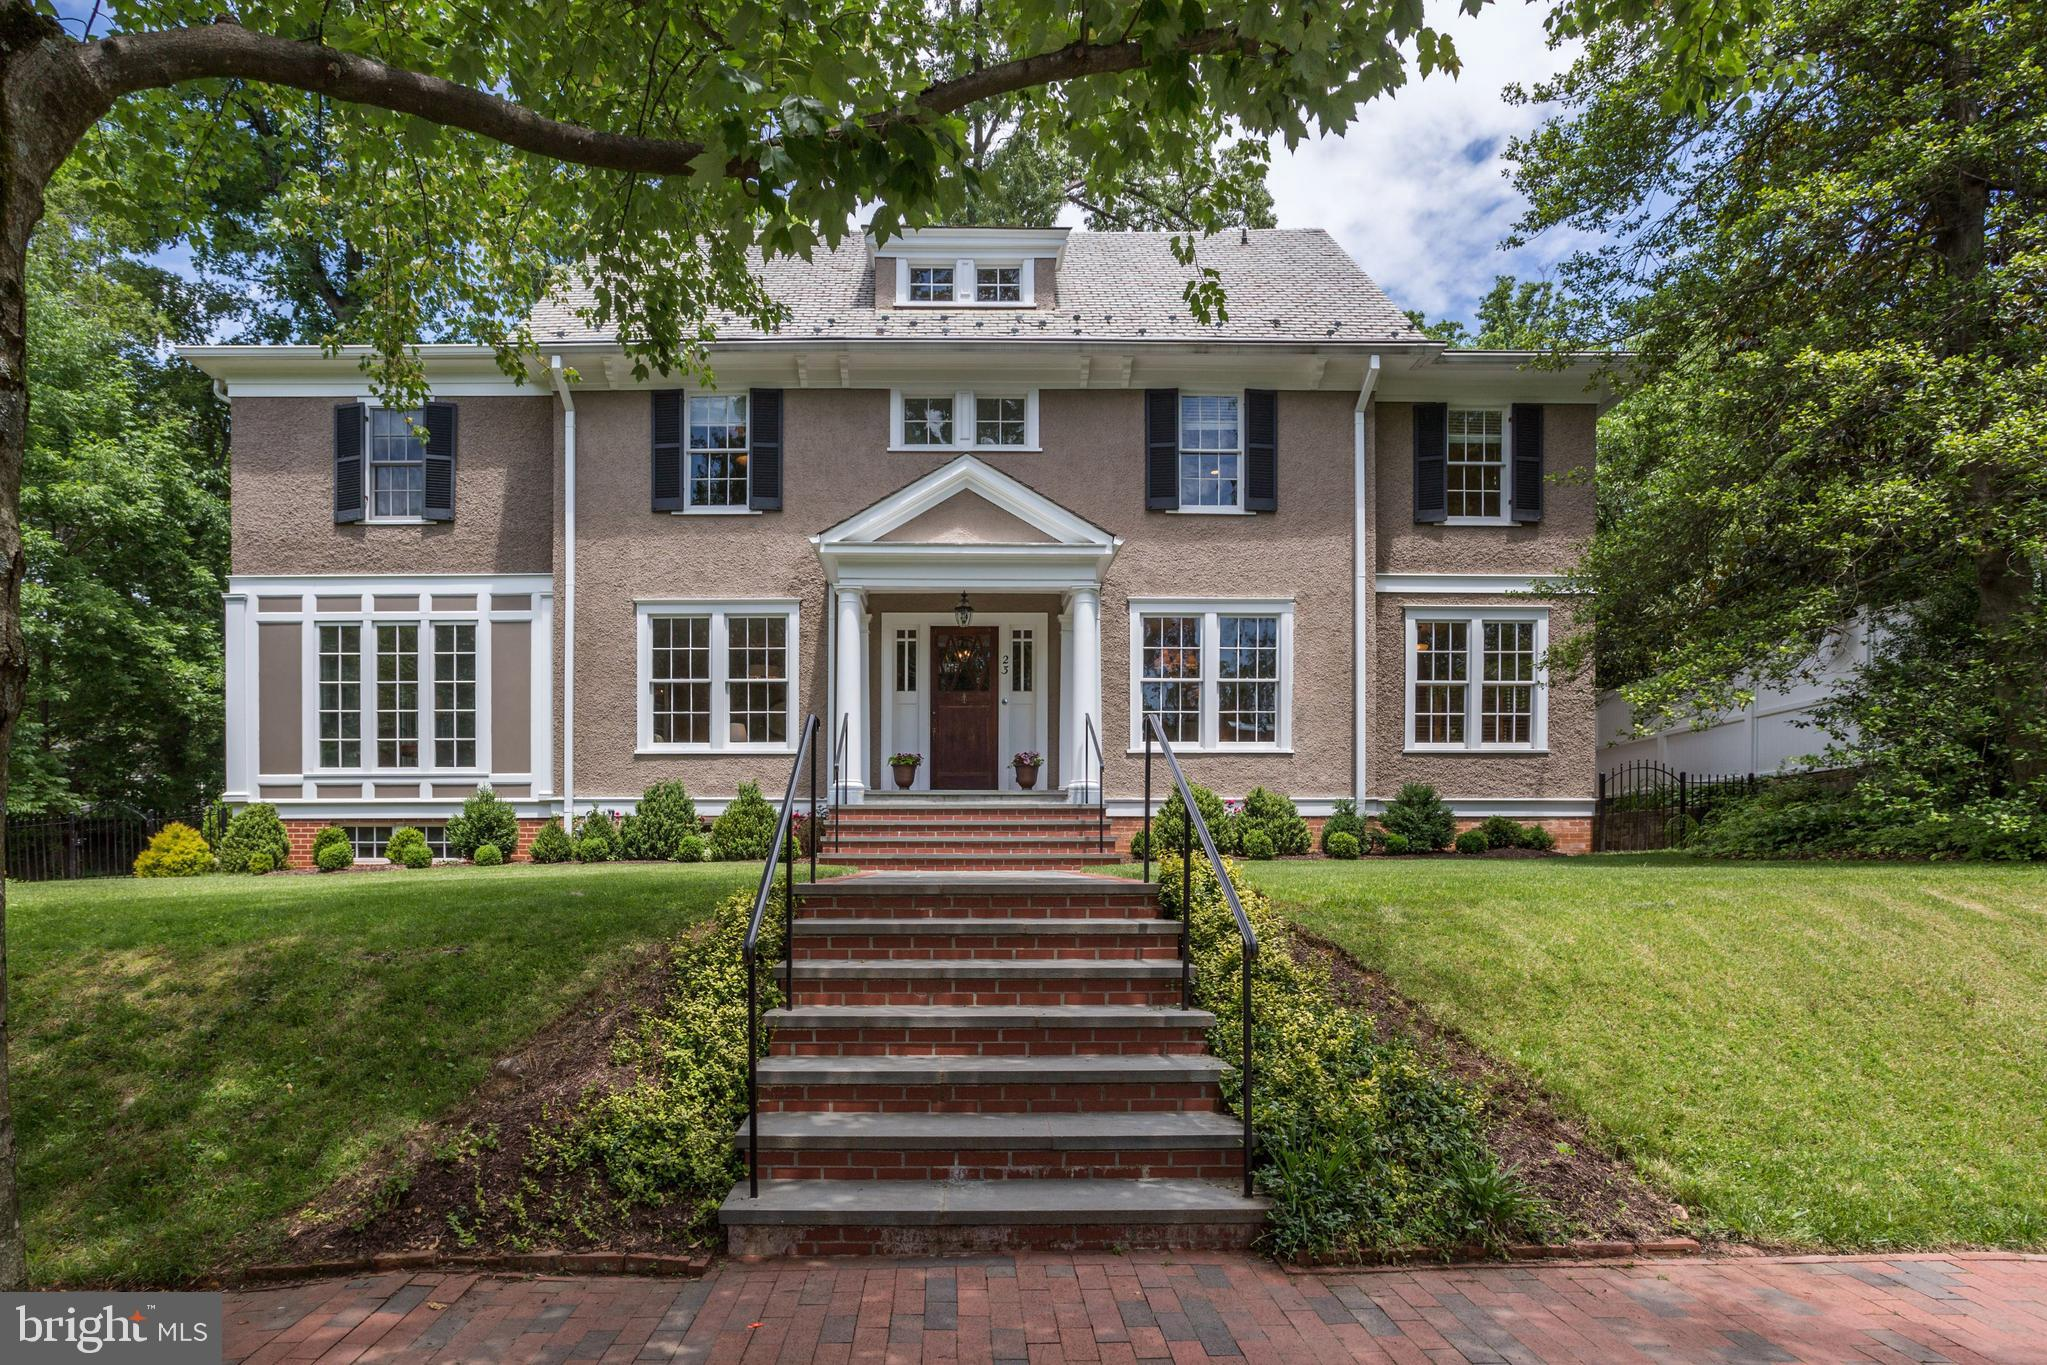 23 W IRVING STREET, CHEVY CHASE, MD 20815